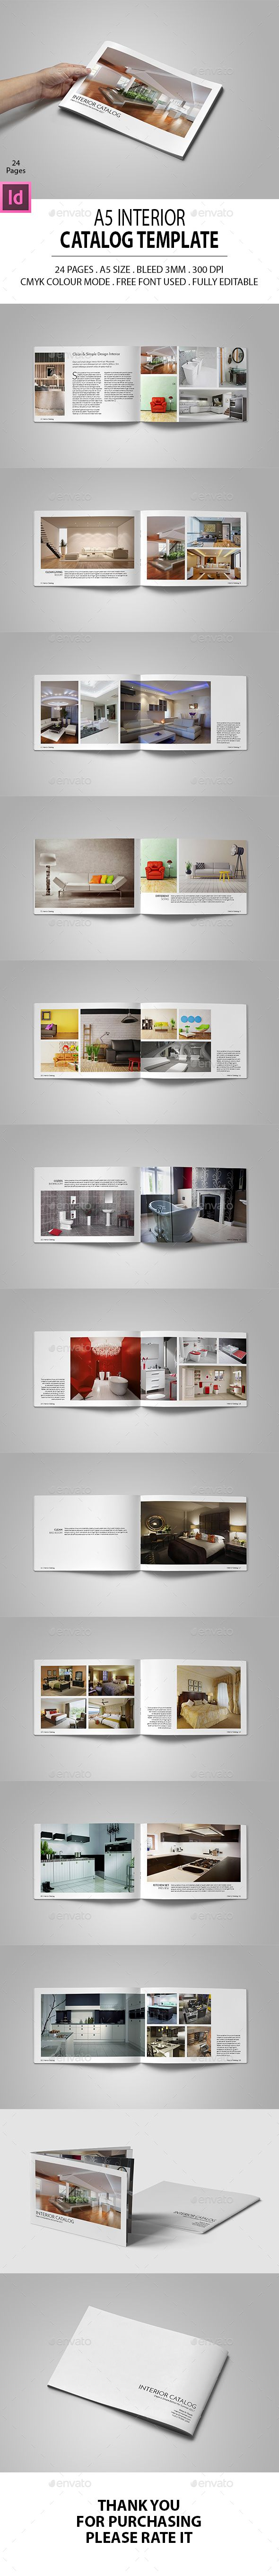 A5 Interior Catalog Template InDesign INDD. Download here: https://graphicriver.net/item/a5-interior-catalog/17600912?ref=ksioks